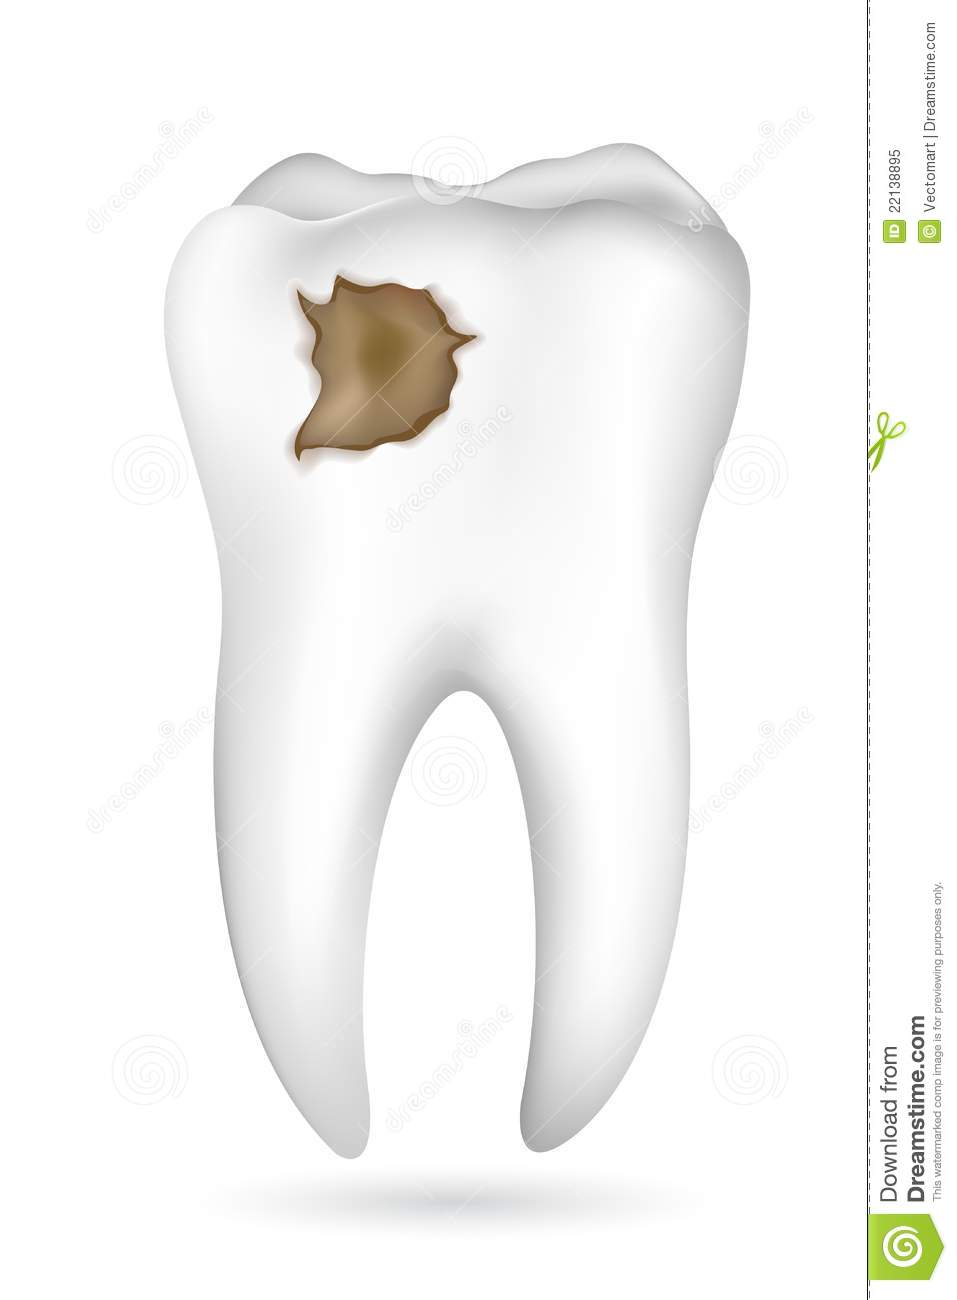 how to stop tooth pain from cavity